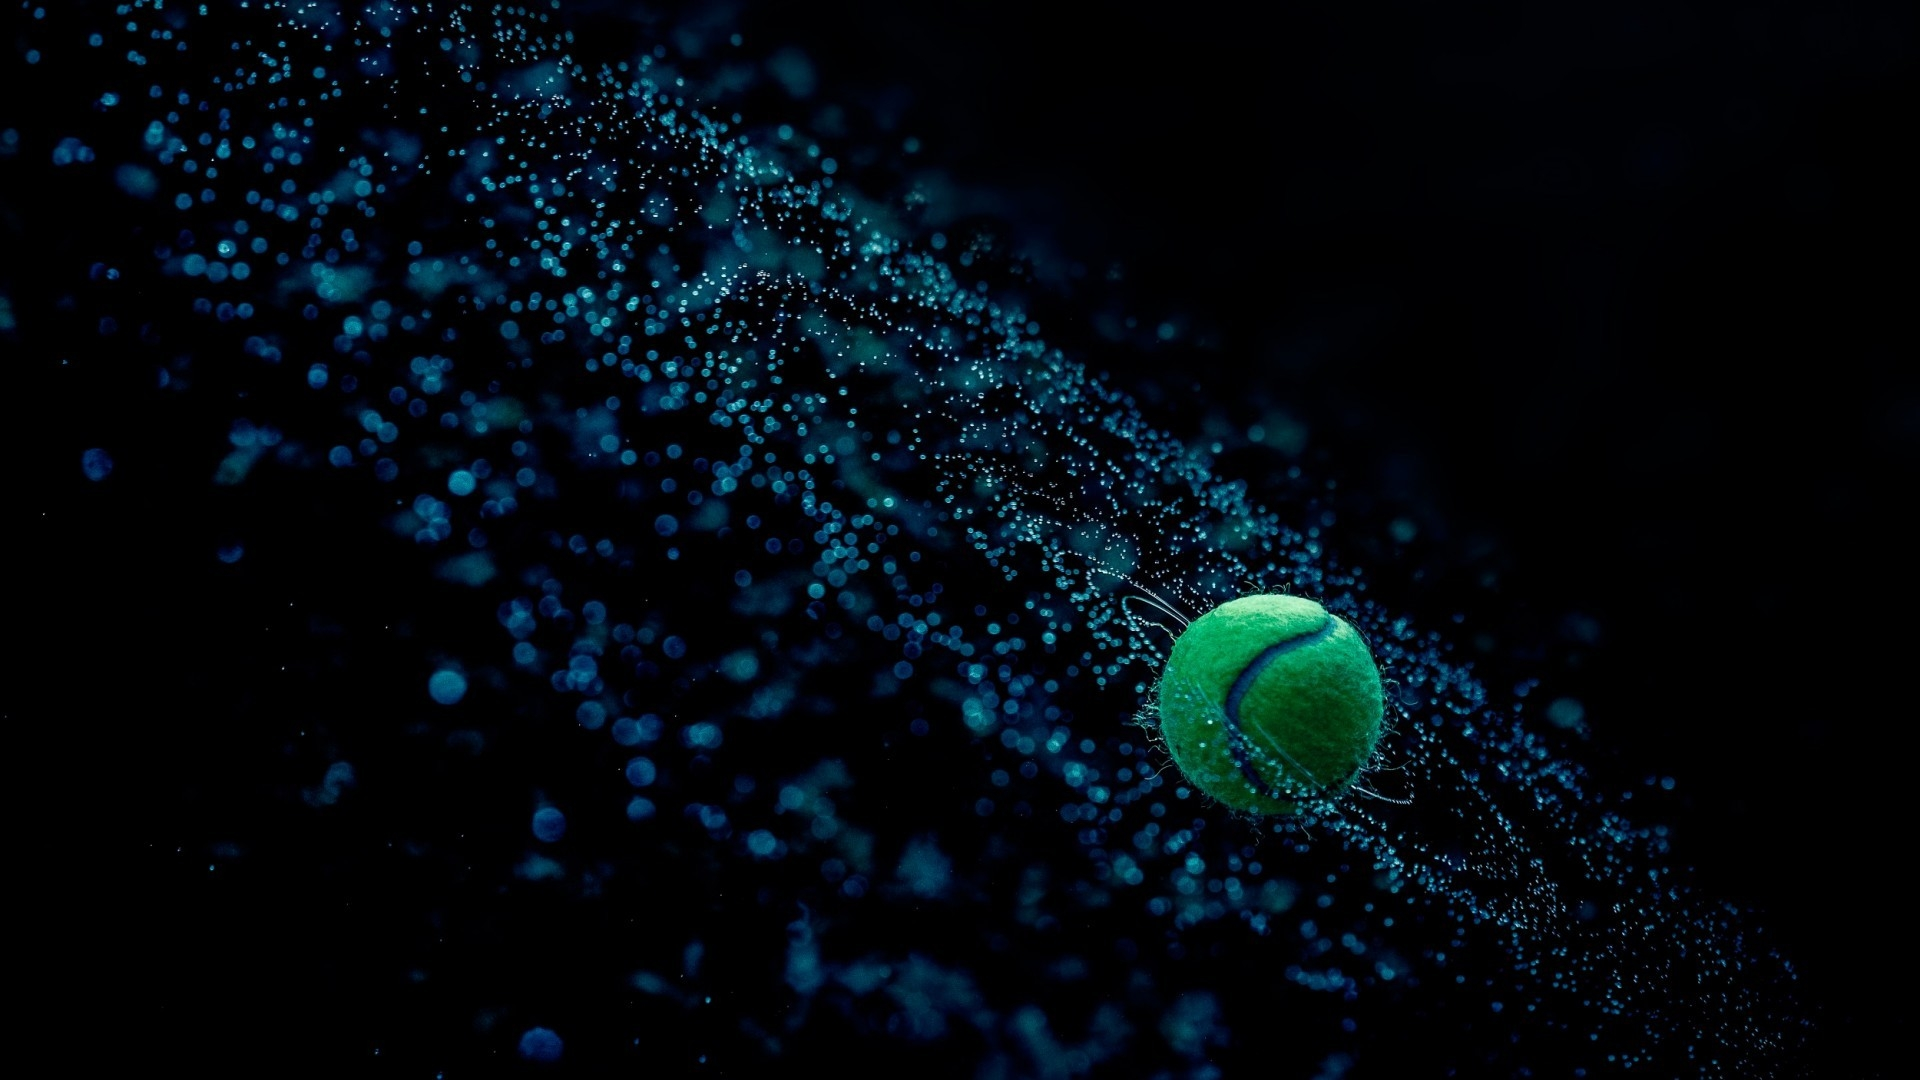 Fantasy Tennis Ball In Water Abstract Wallpaper